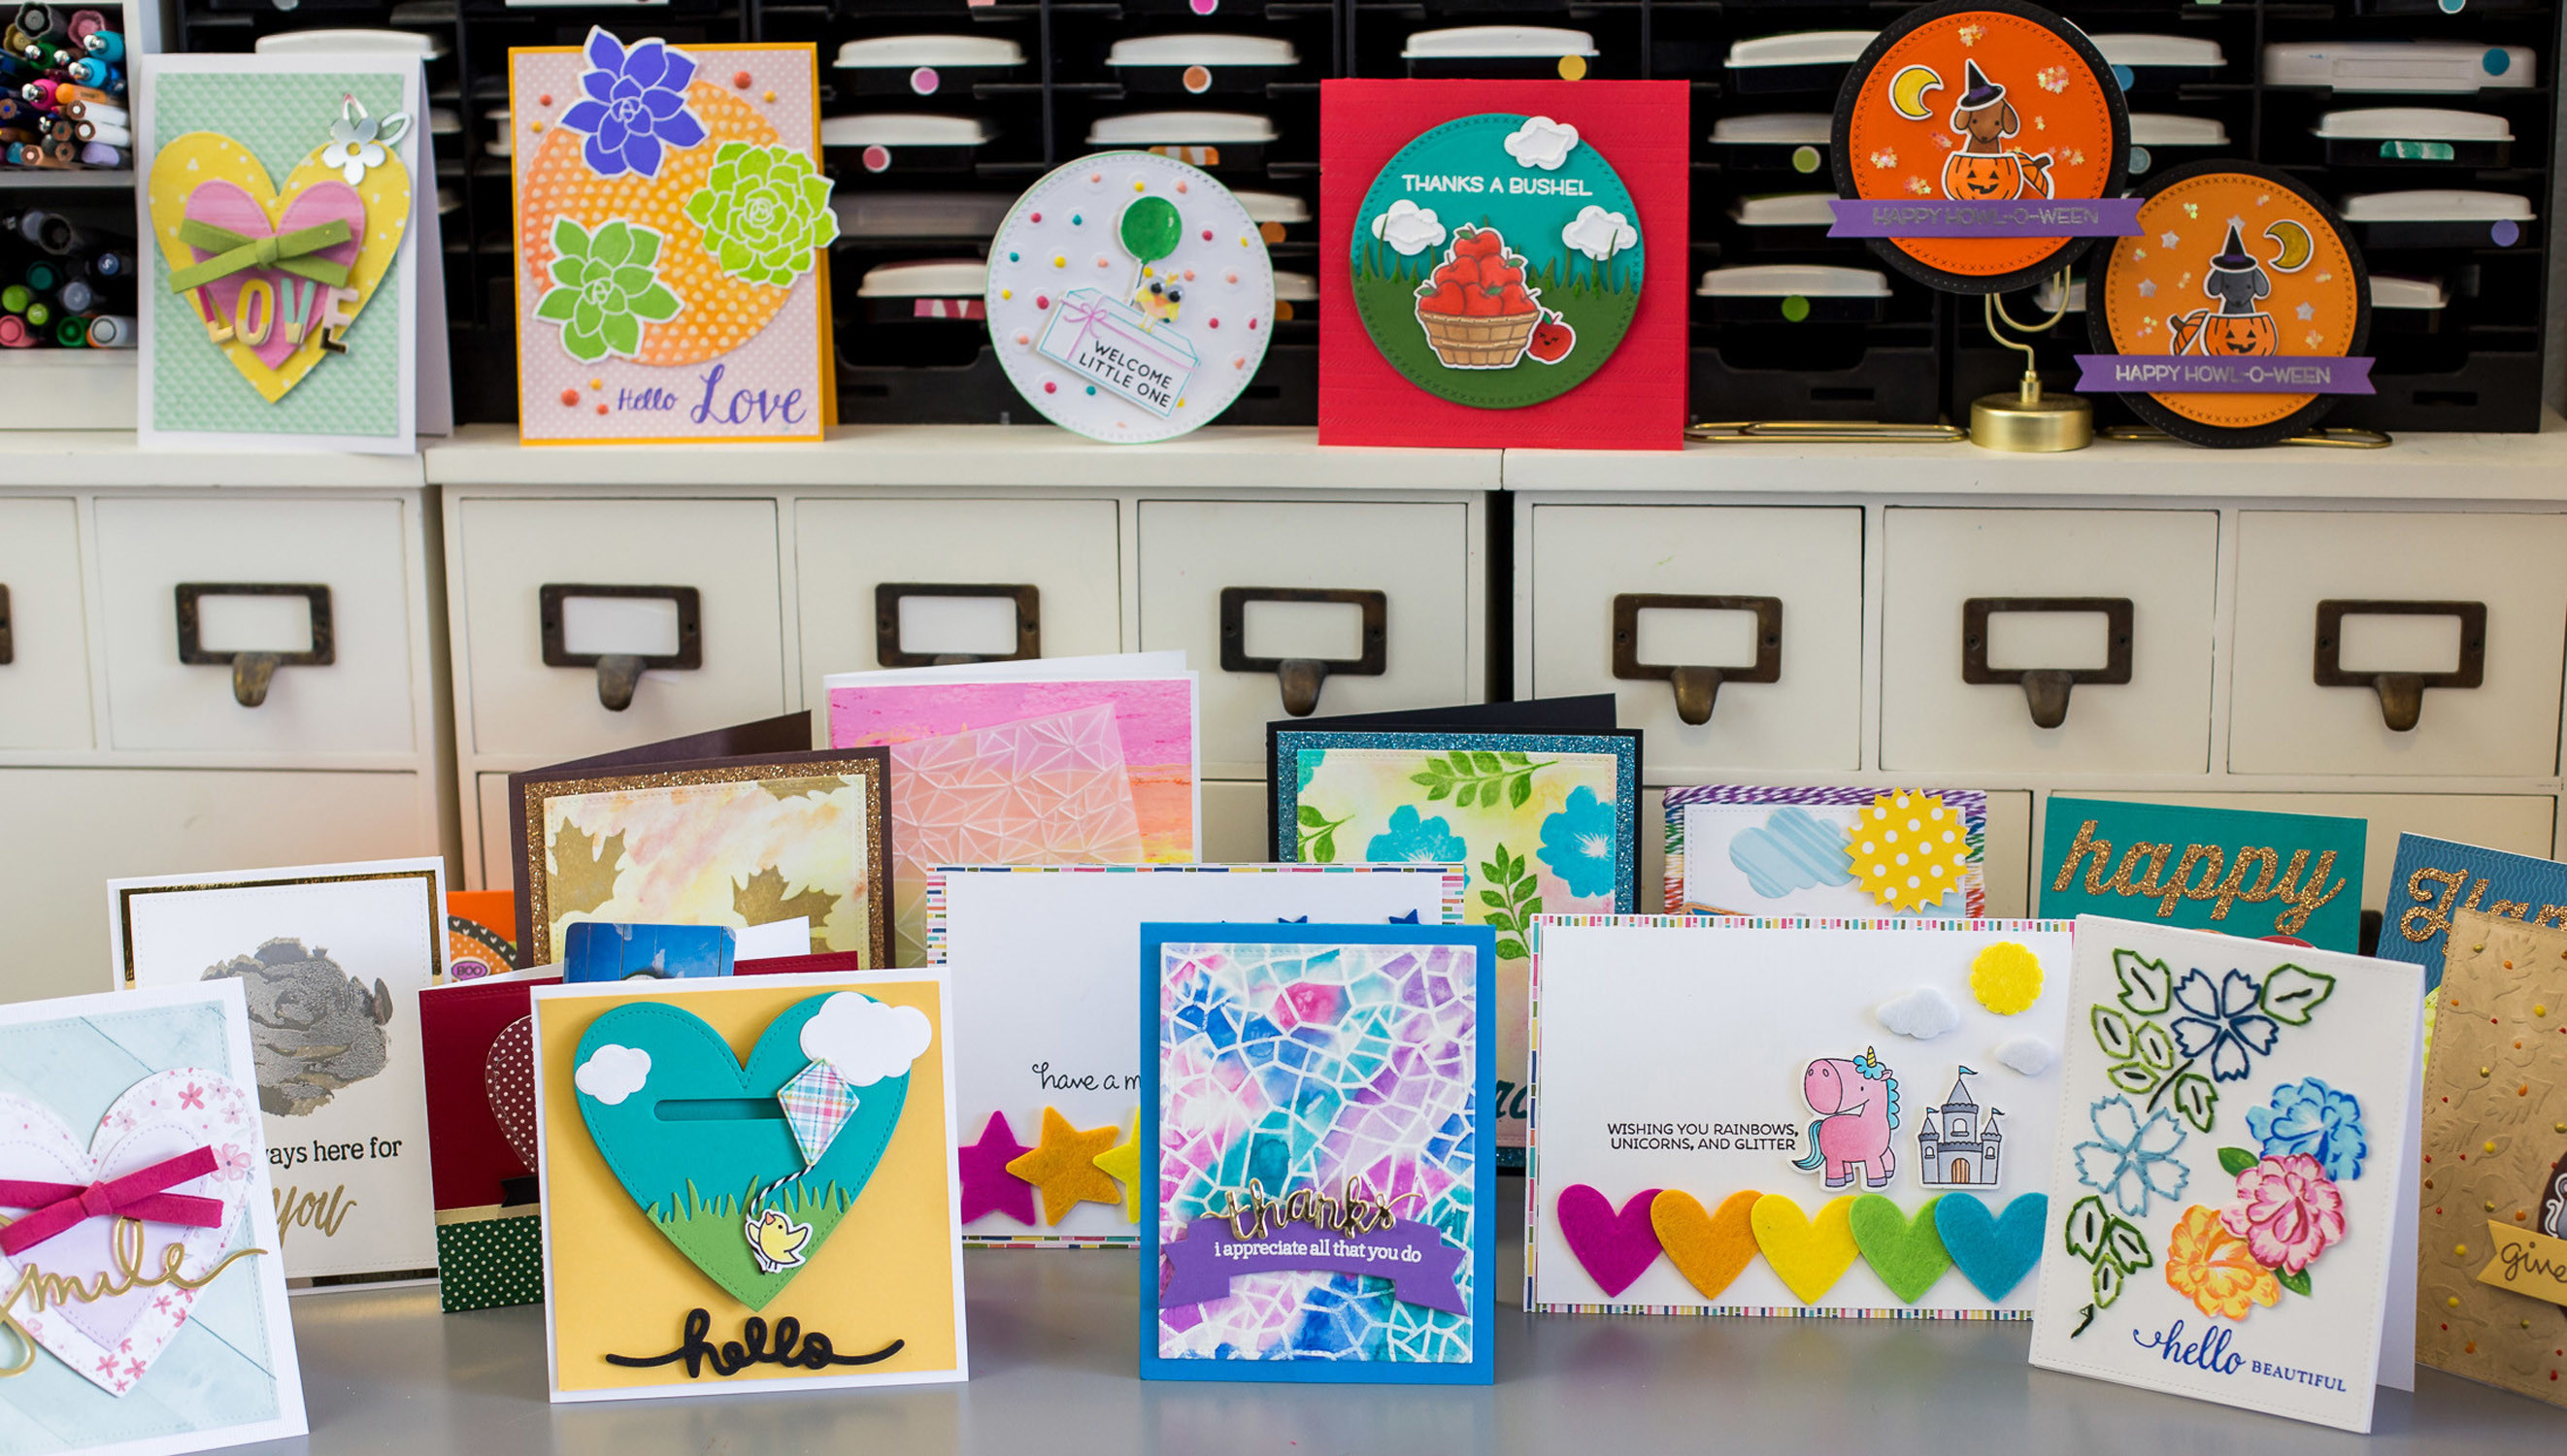 Picture 1 of Wow Factor: Taking Cards to the Next Level at Big Picture Classes